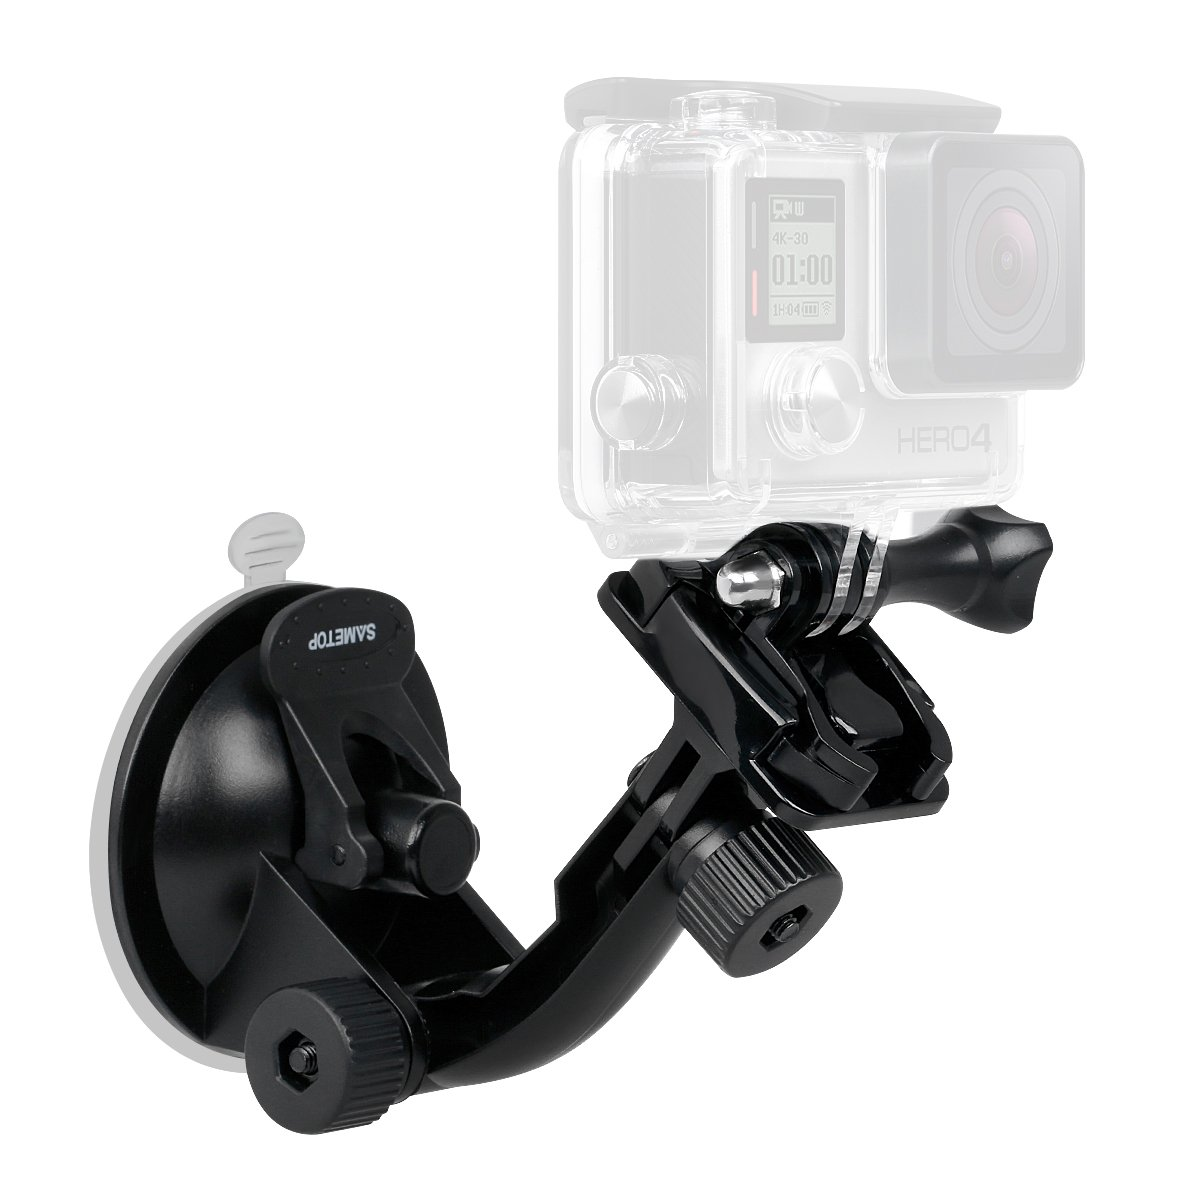 Sametop Suction Cup Mount Compatible with Gopro Hero (2018), Fusion, Hero 7, 6, 5, 4, Session, 3+, 3, 2, 1 Cameras; Perfect for Car Windshield and Window